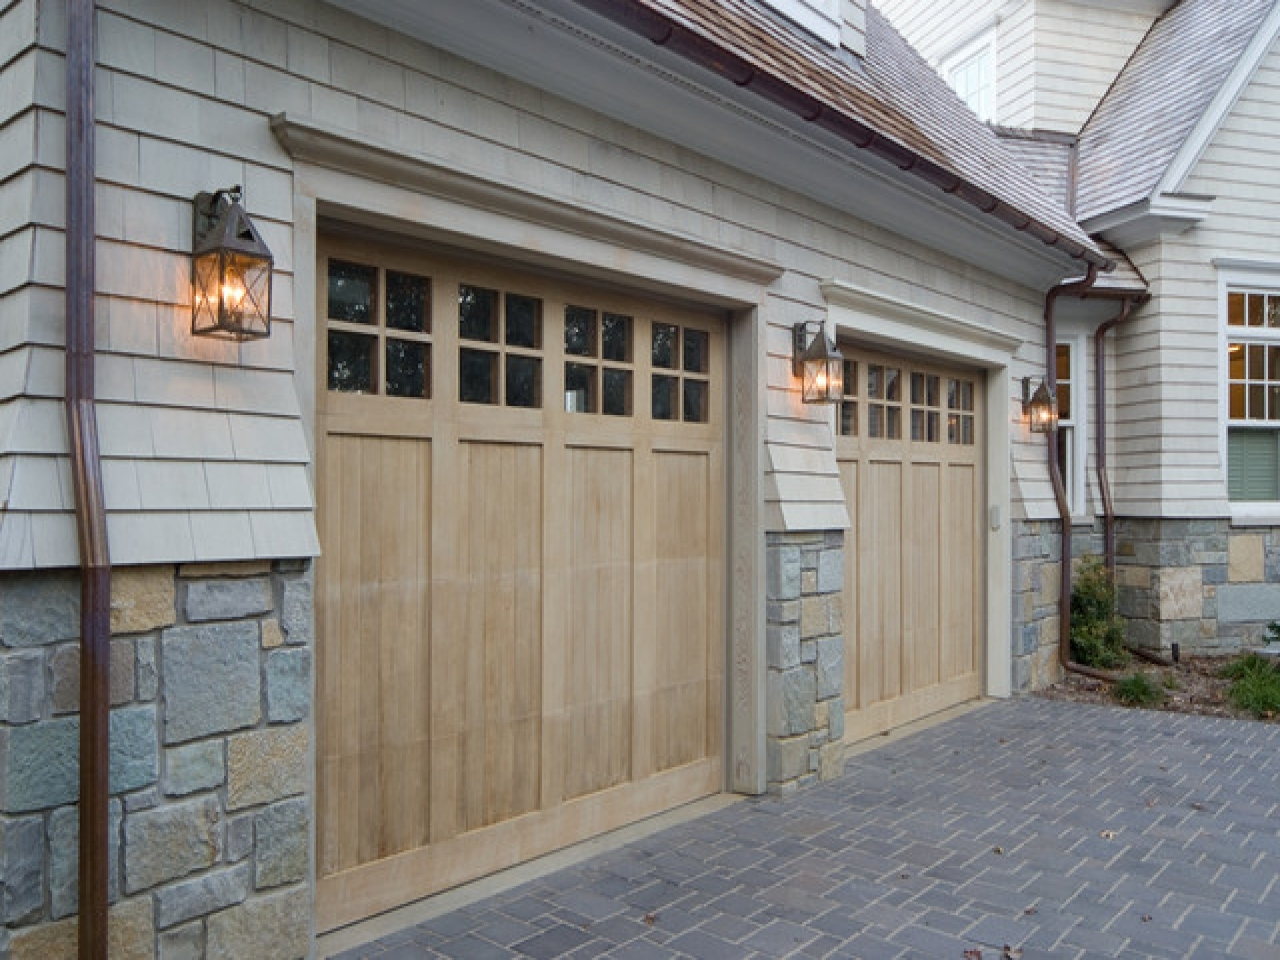 Current 40 Outdoor Lights For Garage Door, Farmhouse Dream Comes True For Regarding Outdoor Lanterns For Garage (Gallery 1 of 20)